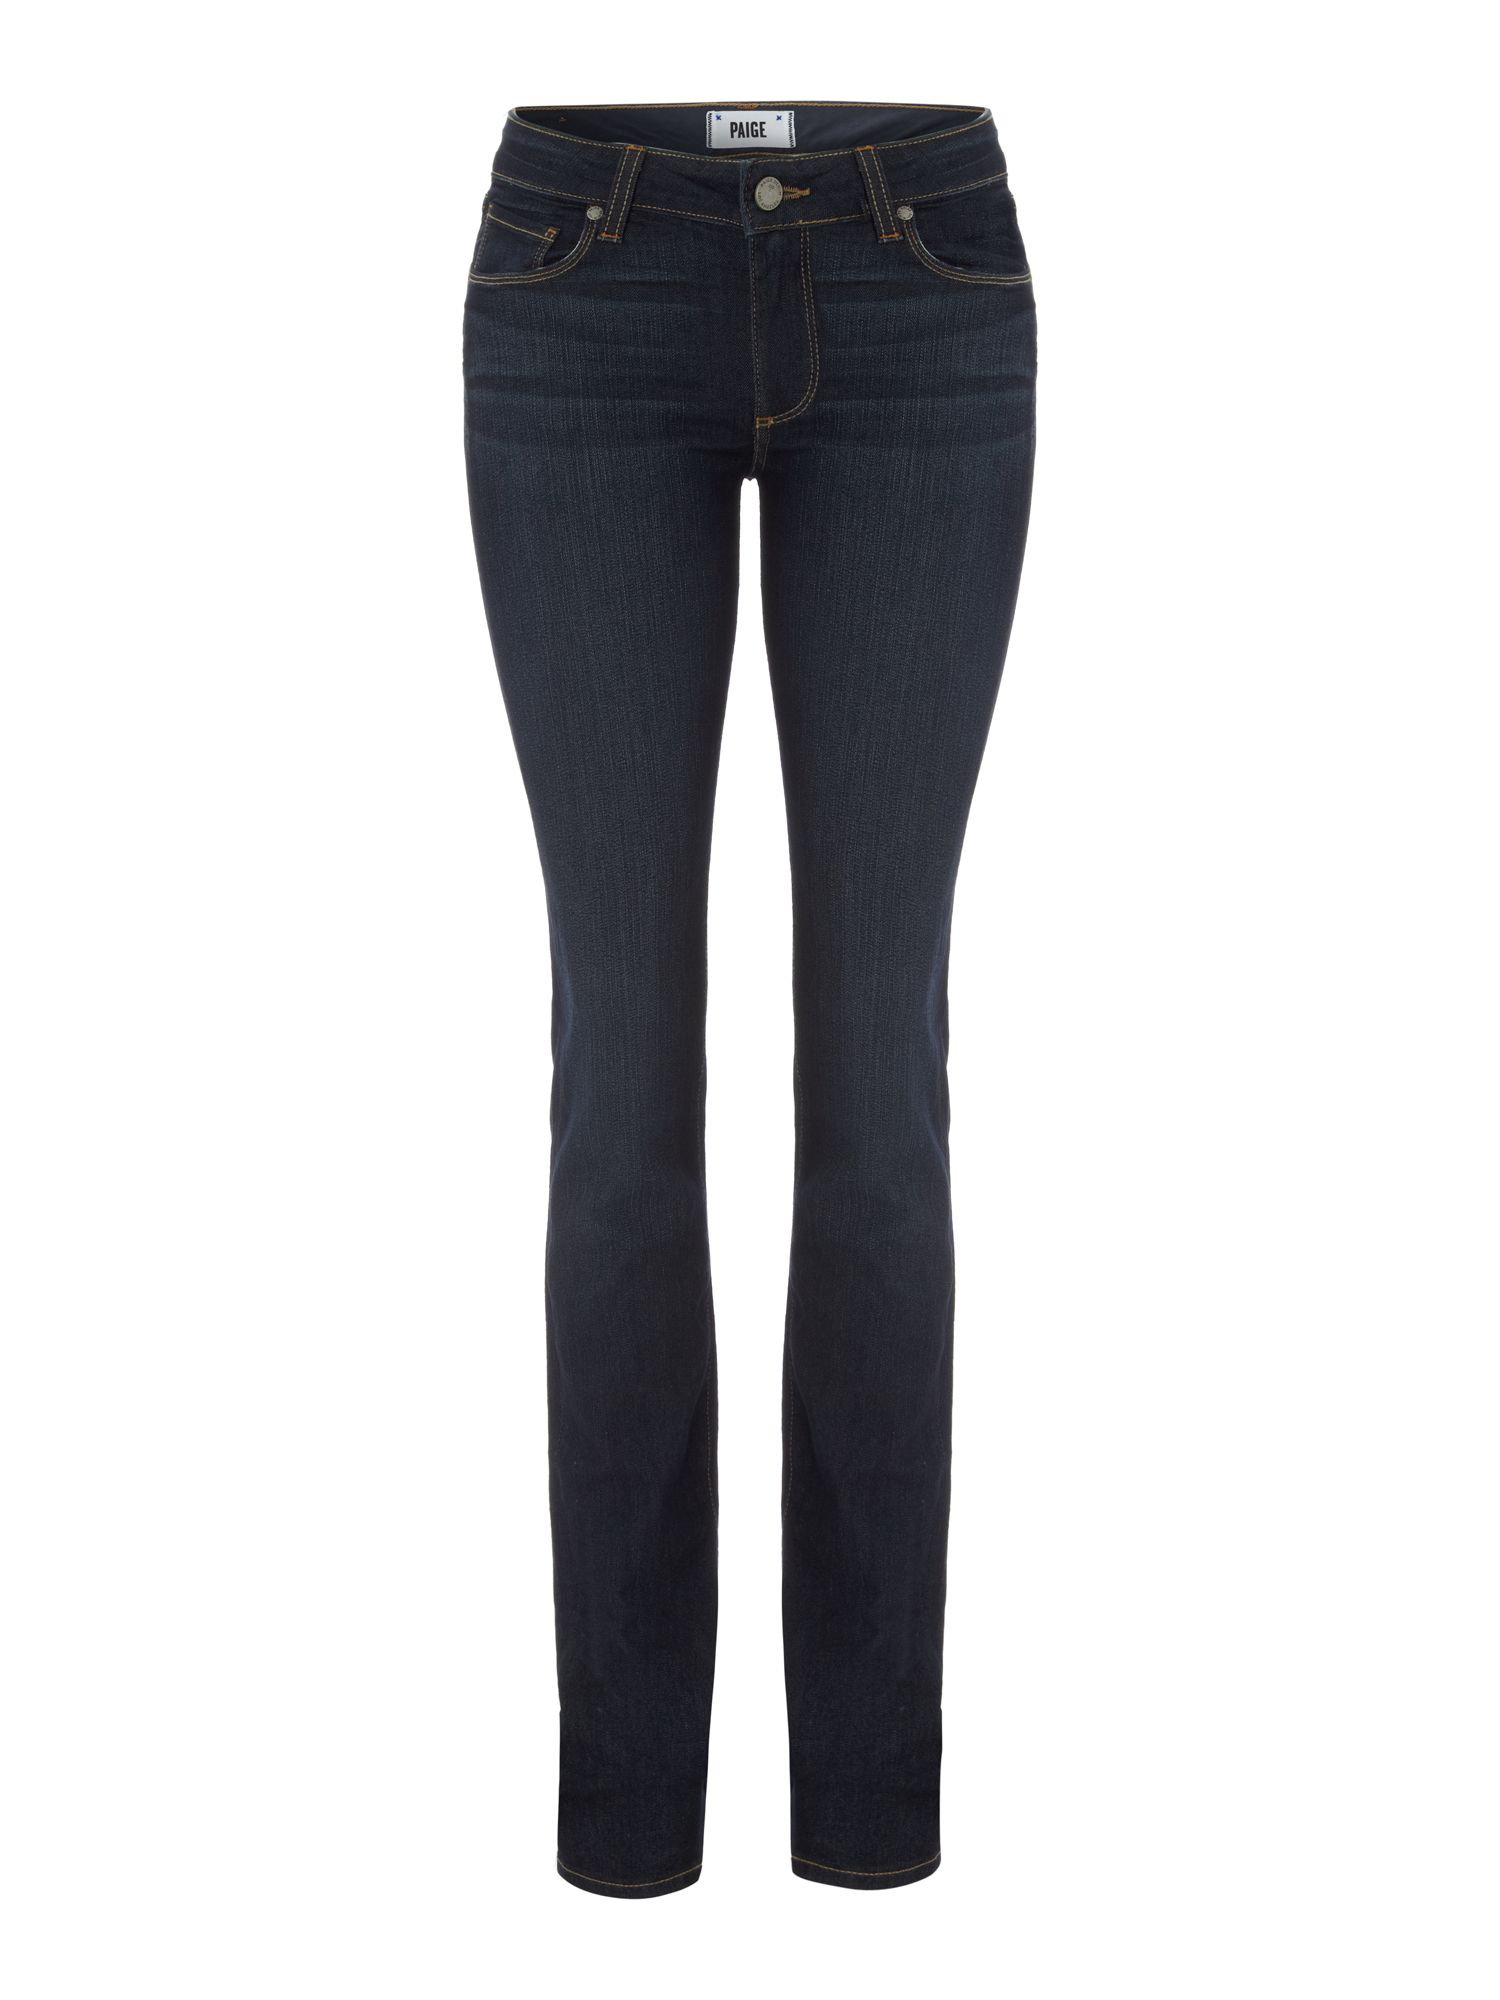 Skyline straight leg jeans in Stream